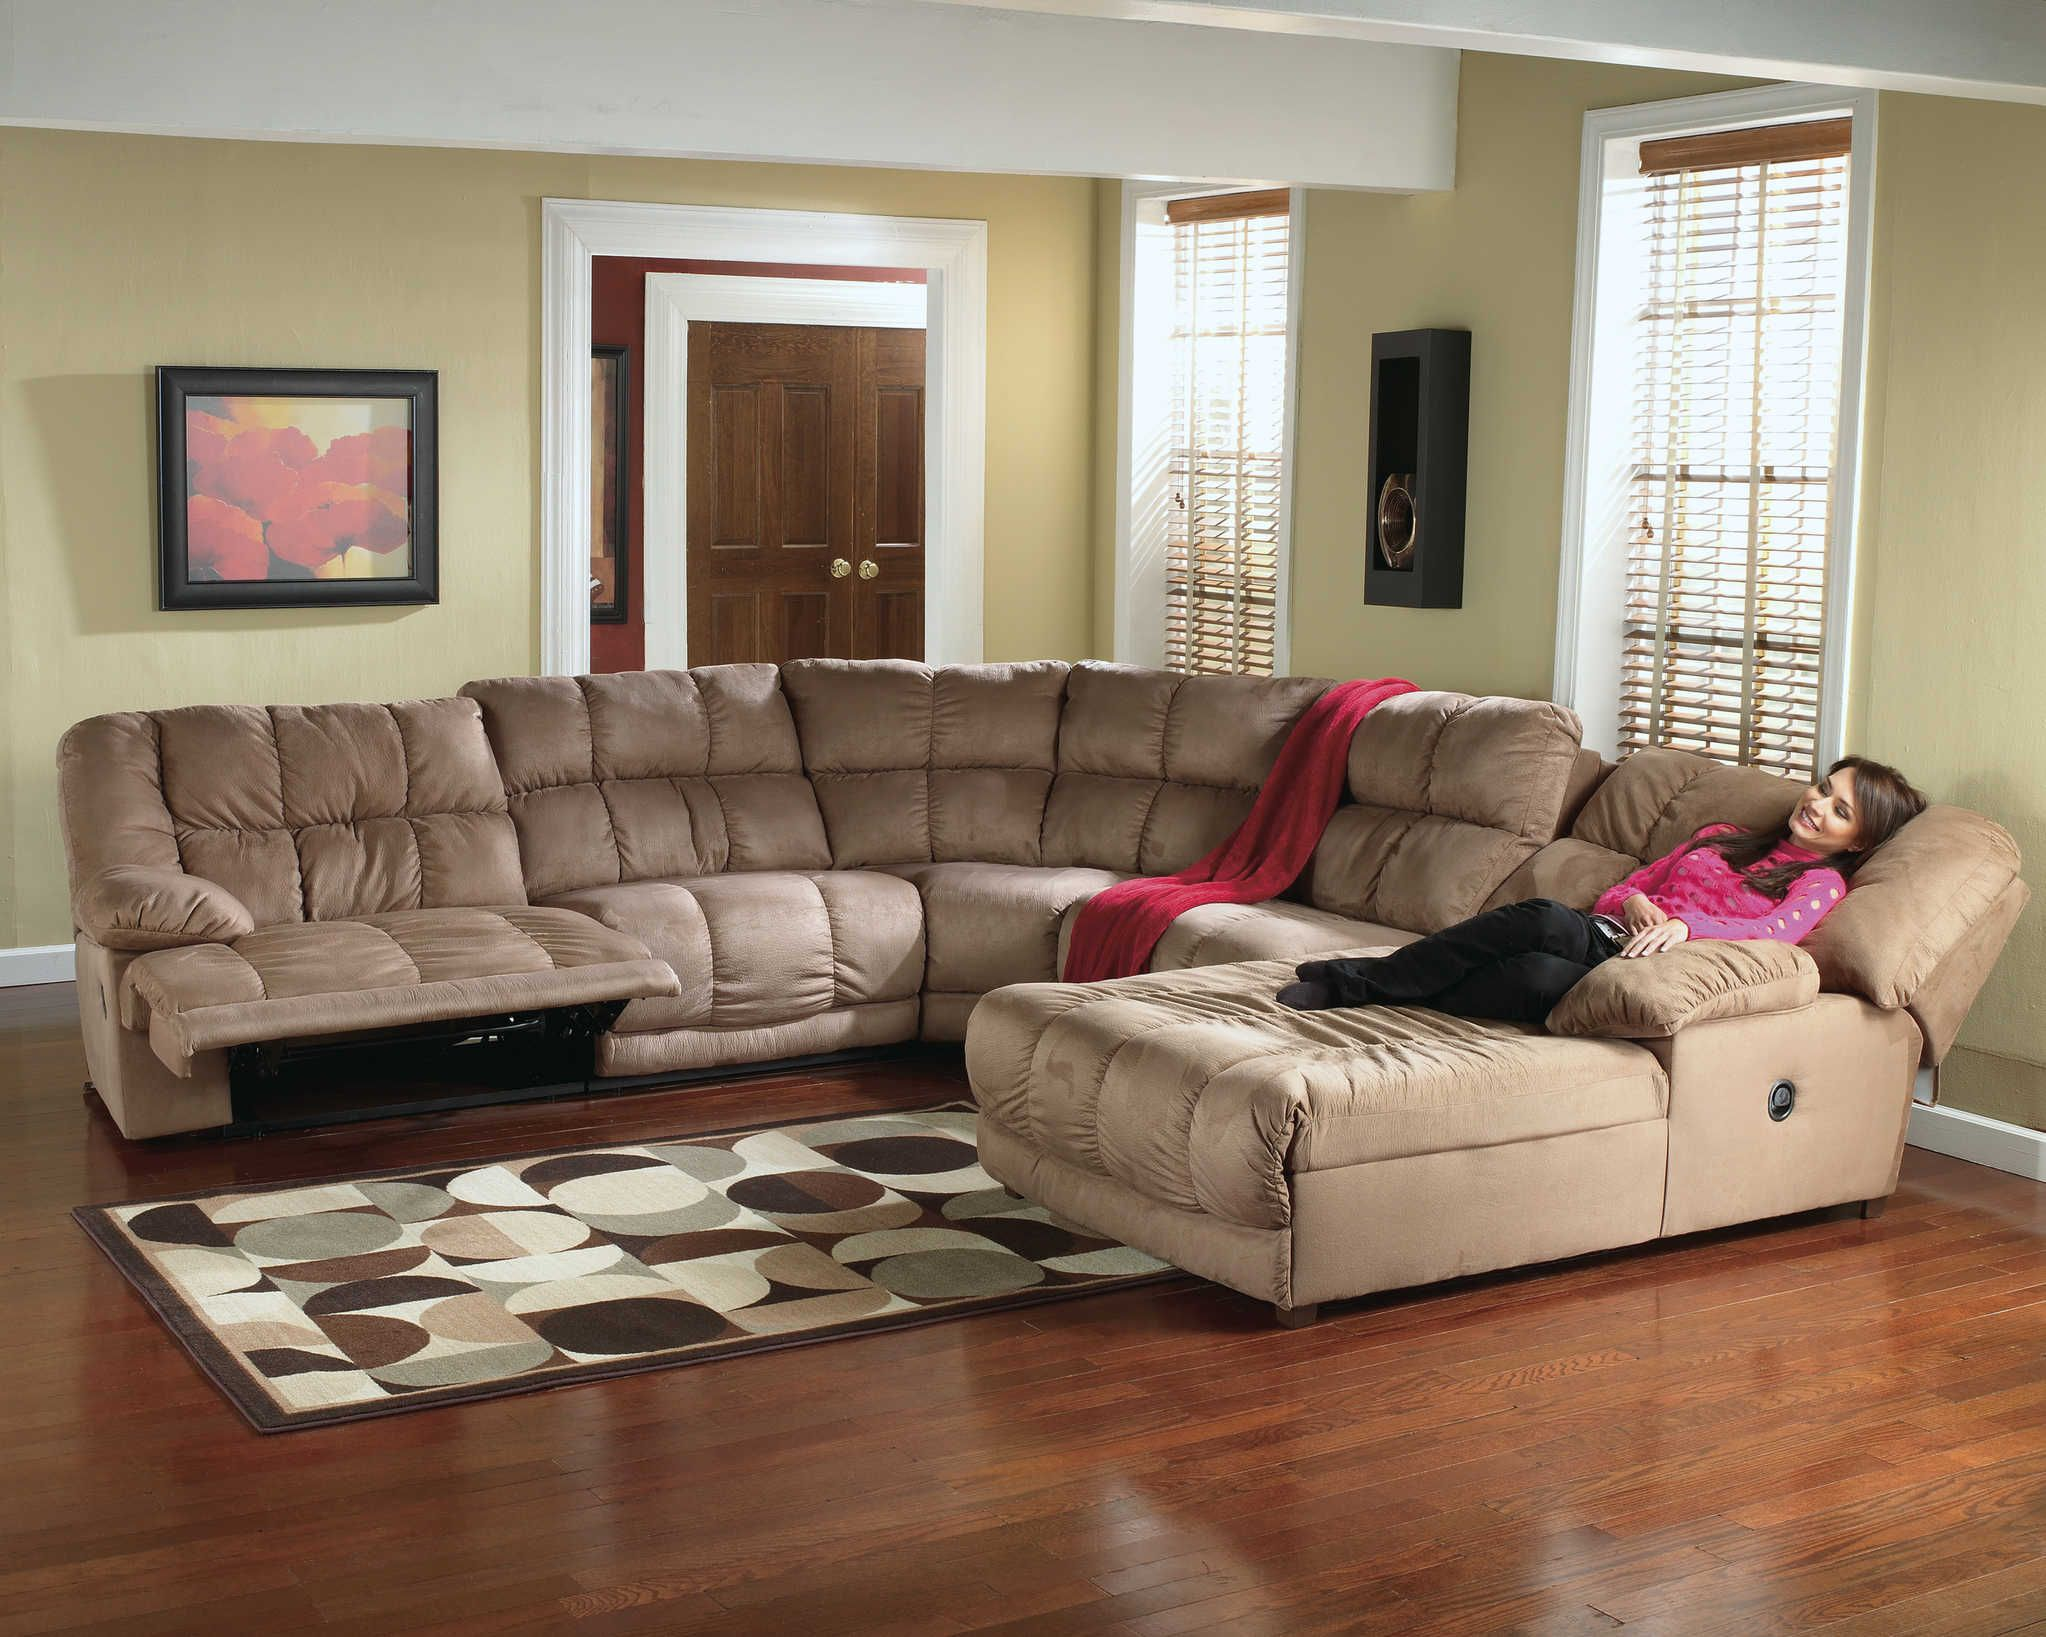 sectional sofas and recliners sofa caster legs microfiber recliner chaise 260